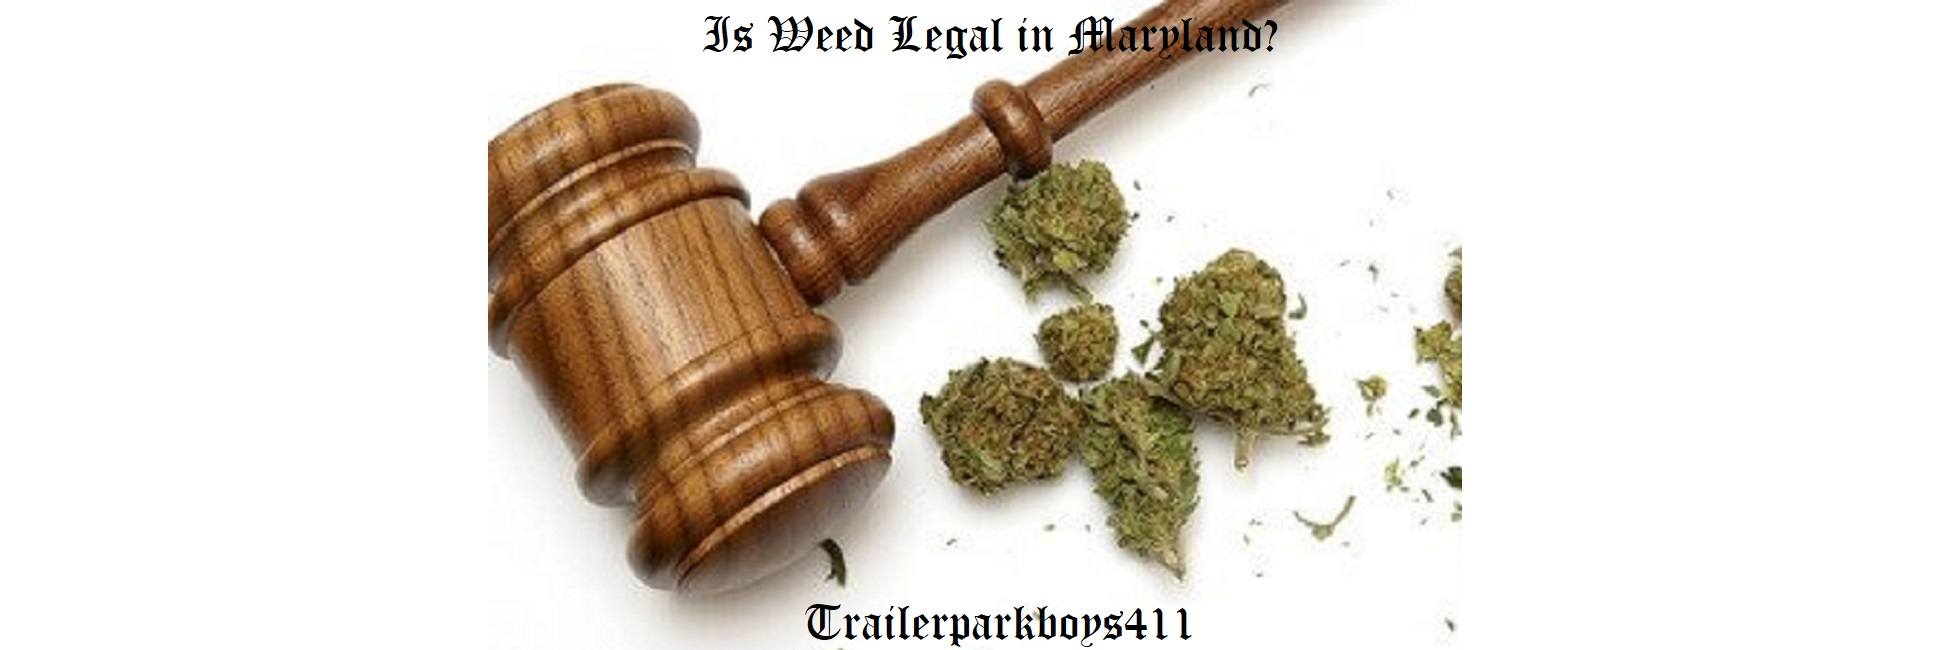 Is Weed Legal in Maryland